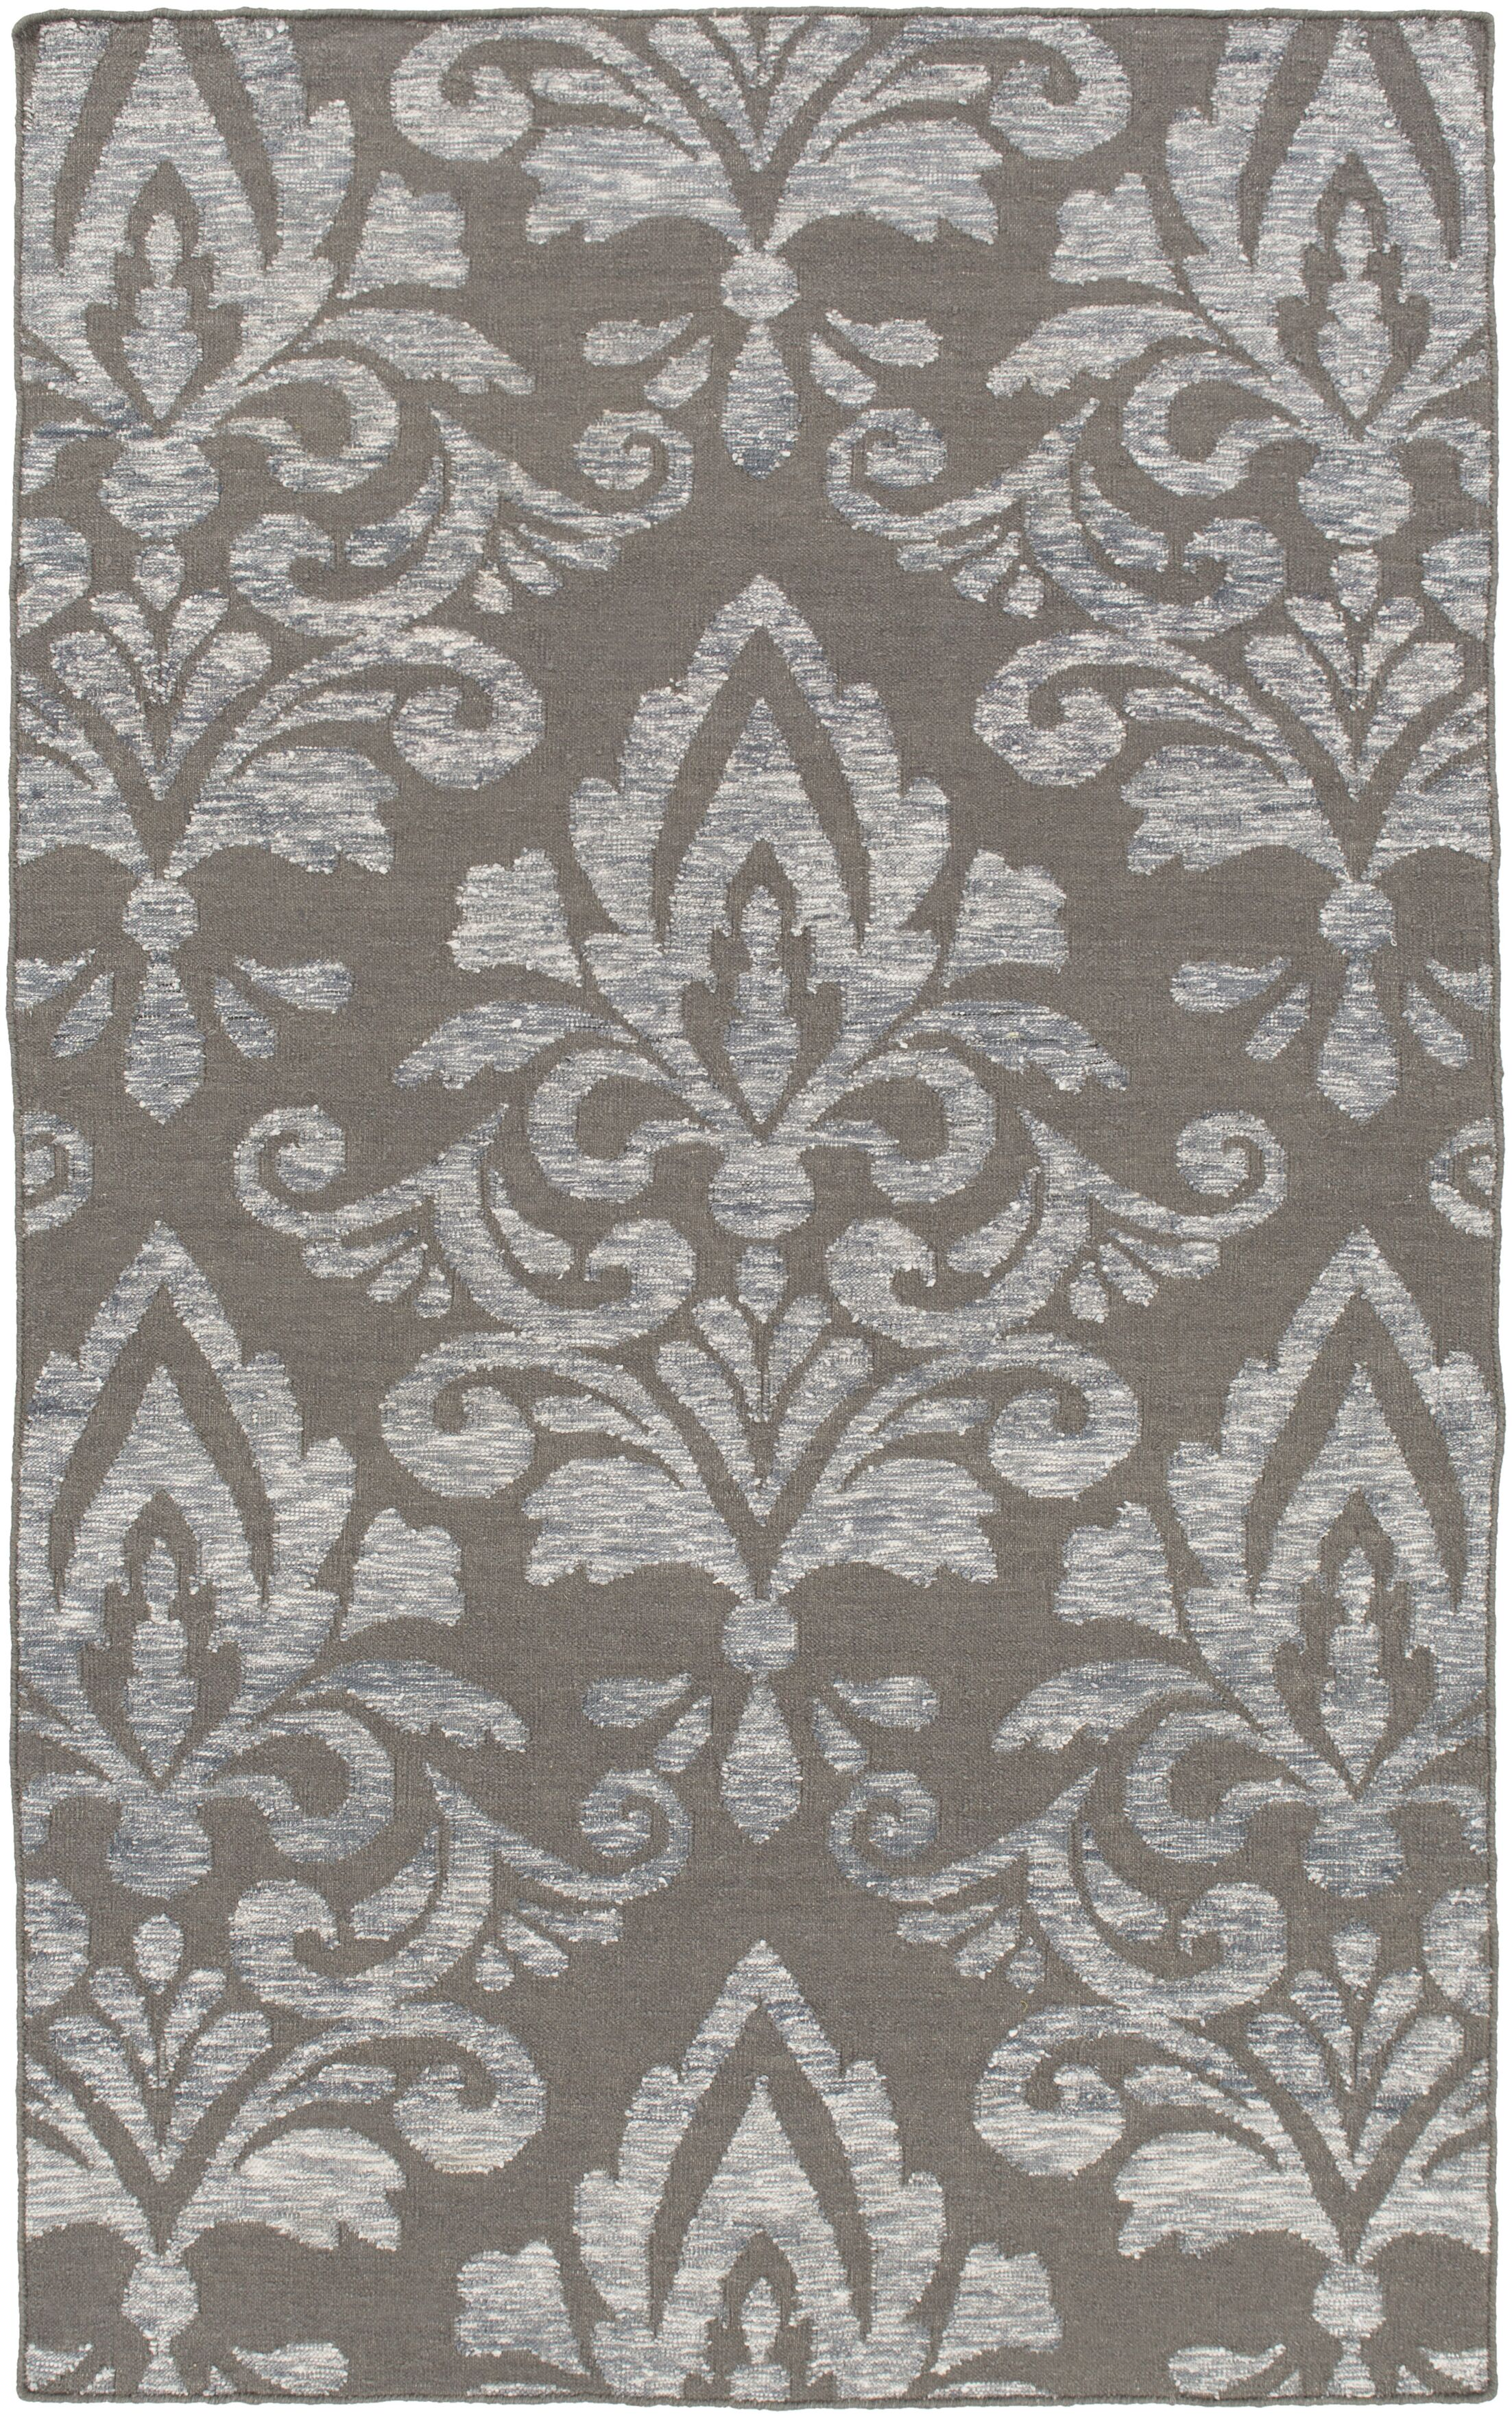 Delavan Hand Woven Ikat Gray Area Rug Rug Size: Rectangle 8' x 10'